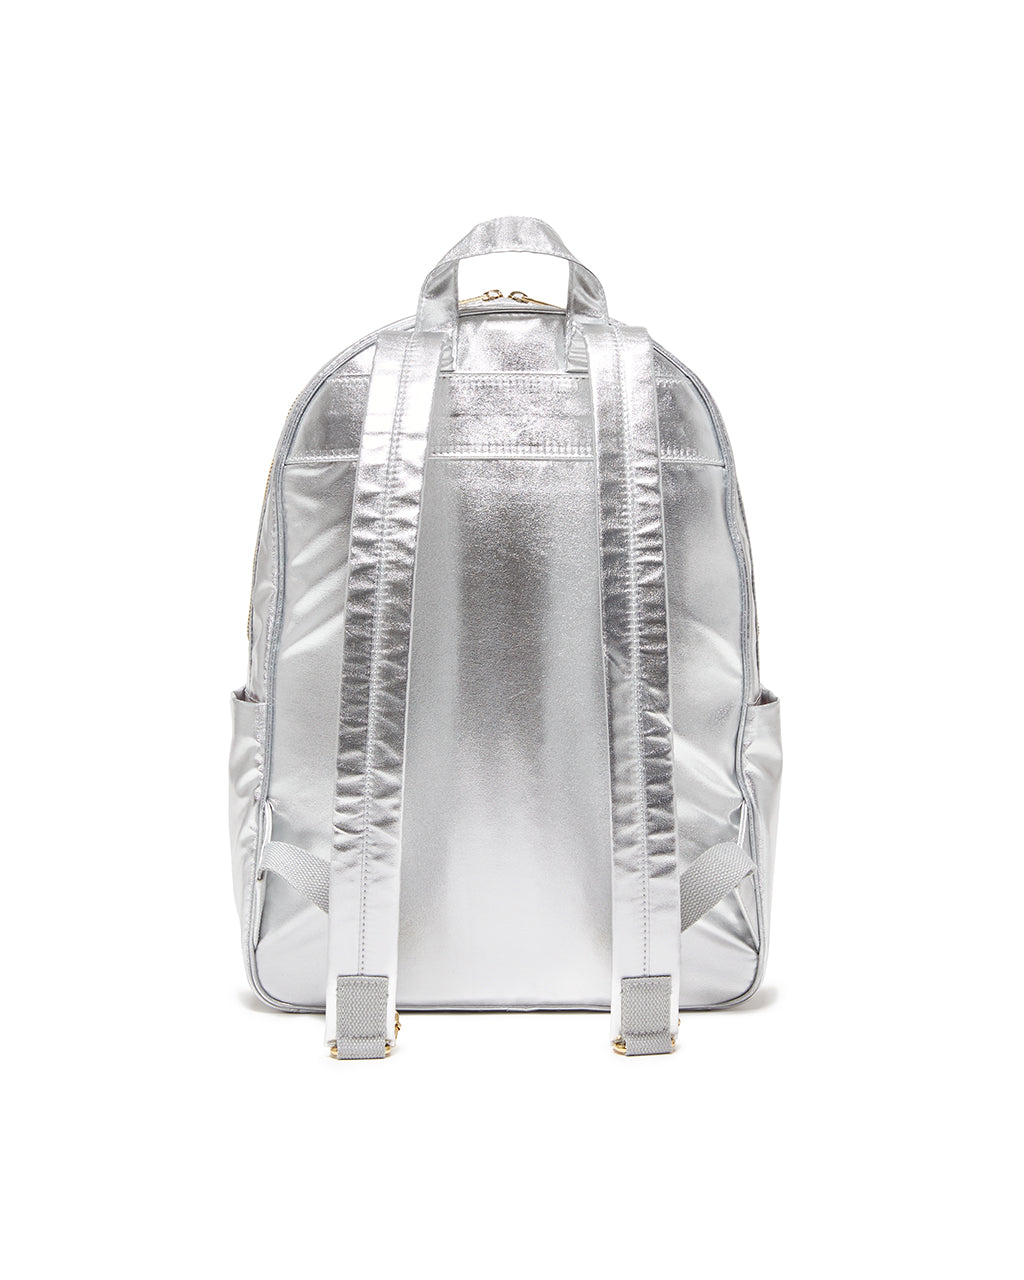 Cotton webbing and metal hardware make this backpack as durable as it is beautiful.